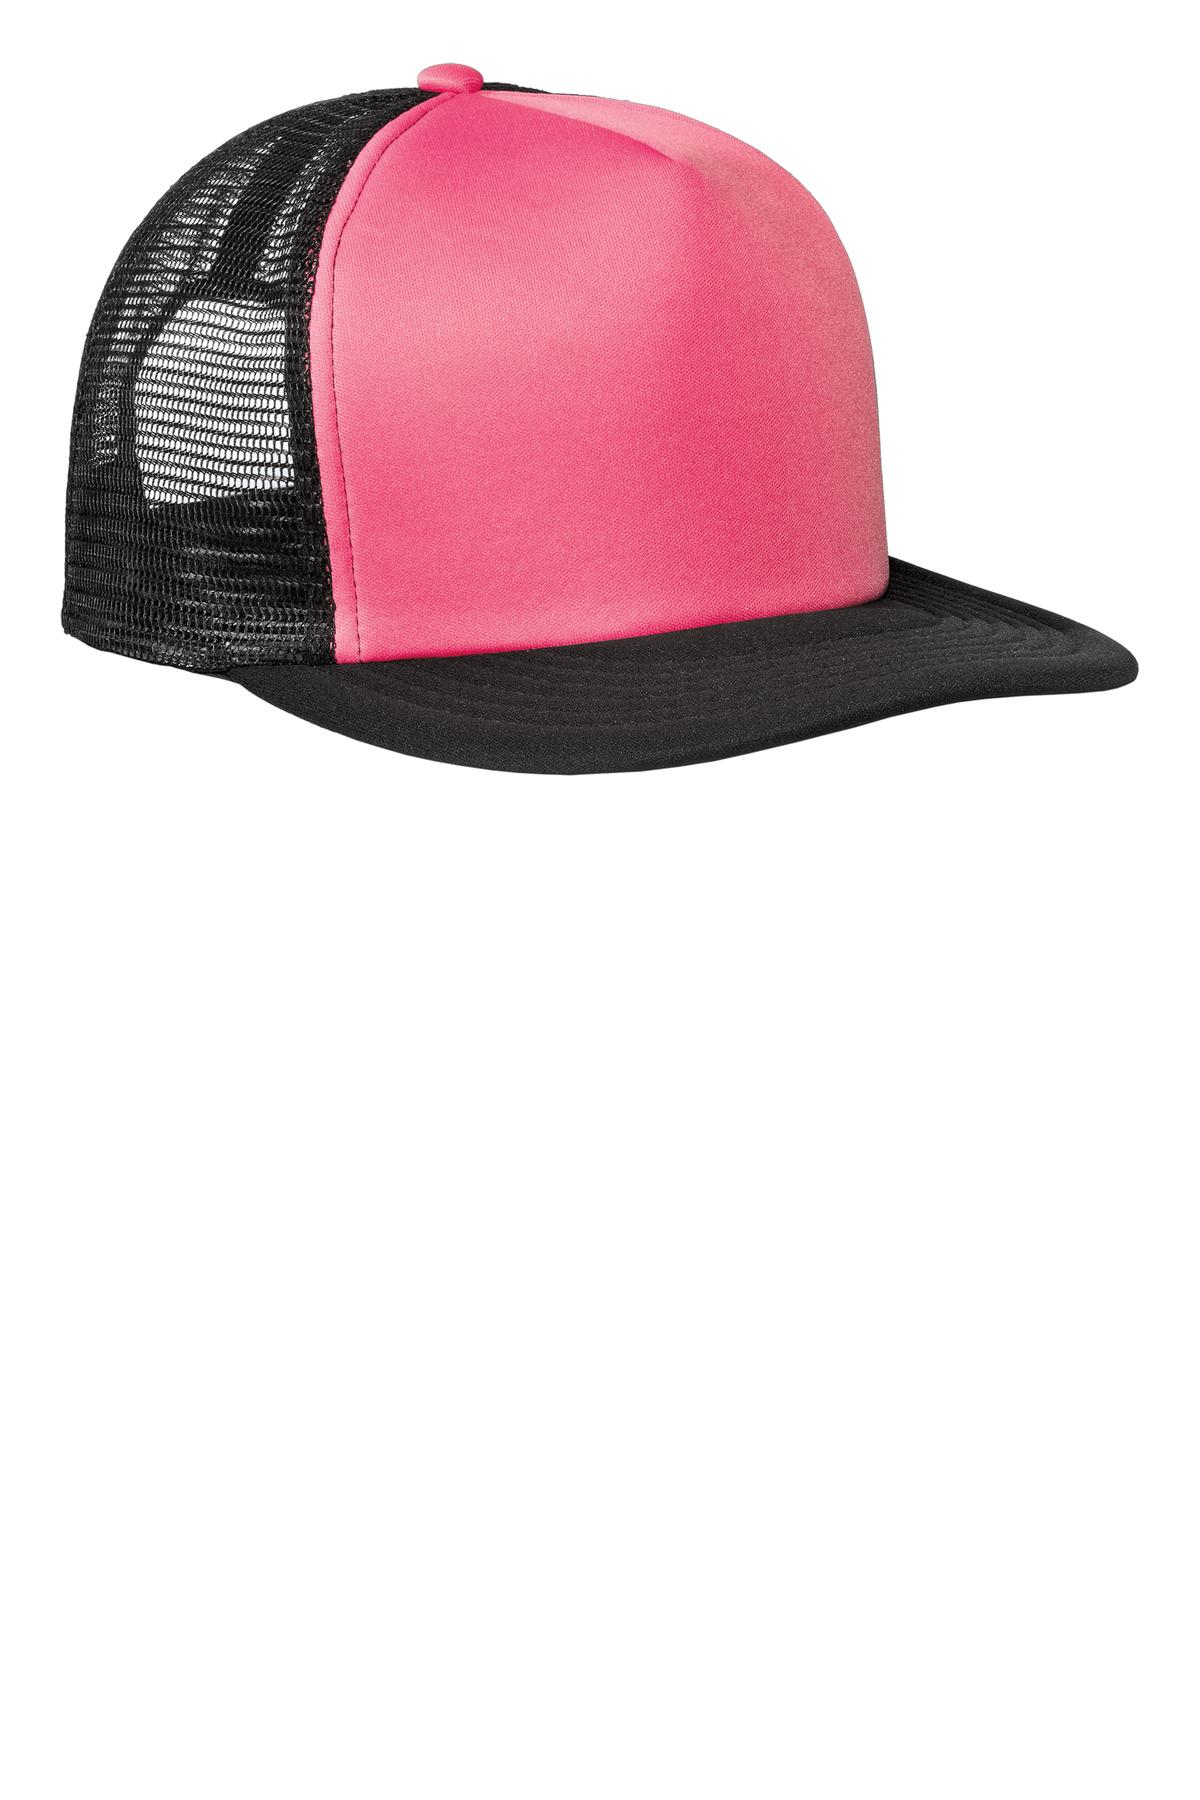 DT624 District® - Flat Bill Snapback Trucker Cap